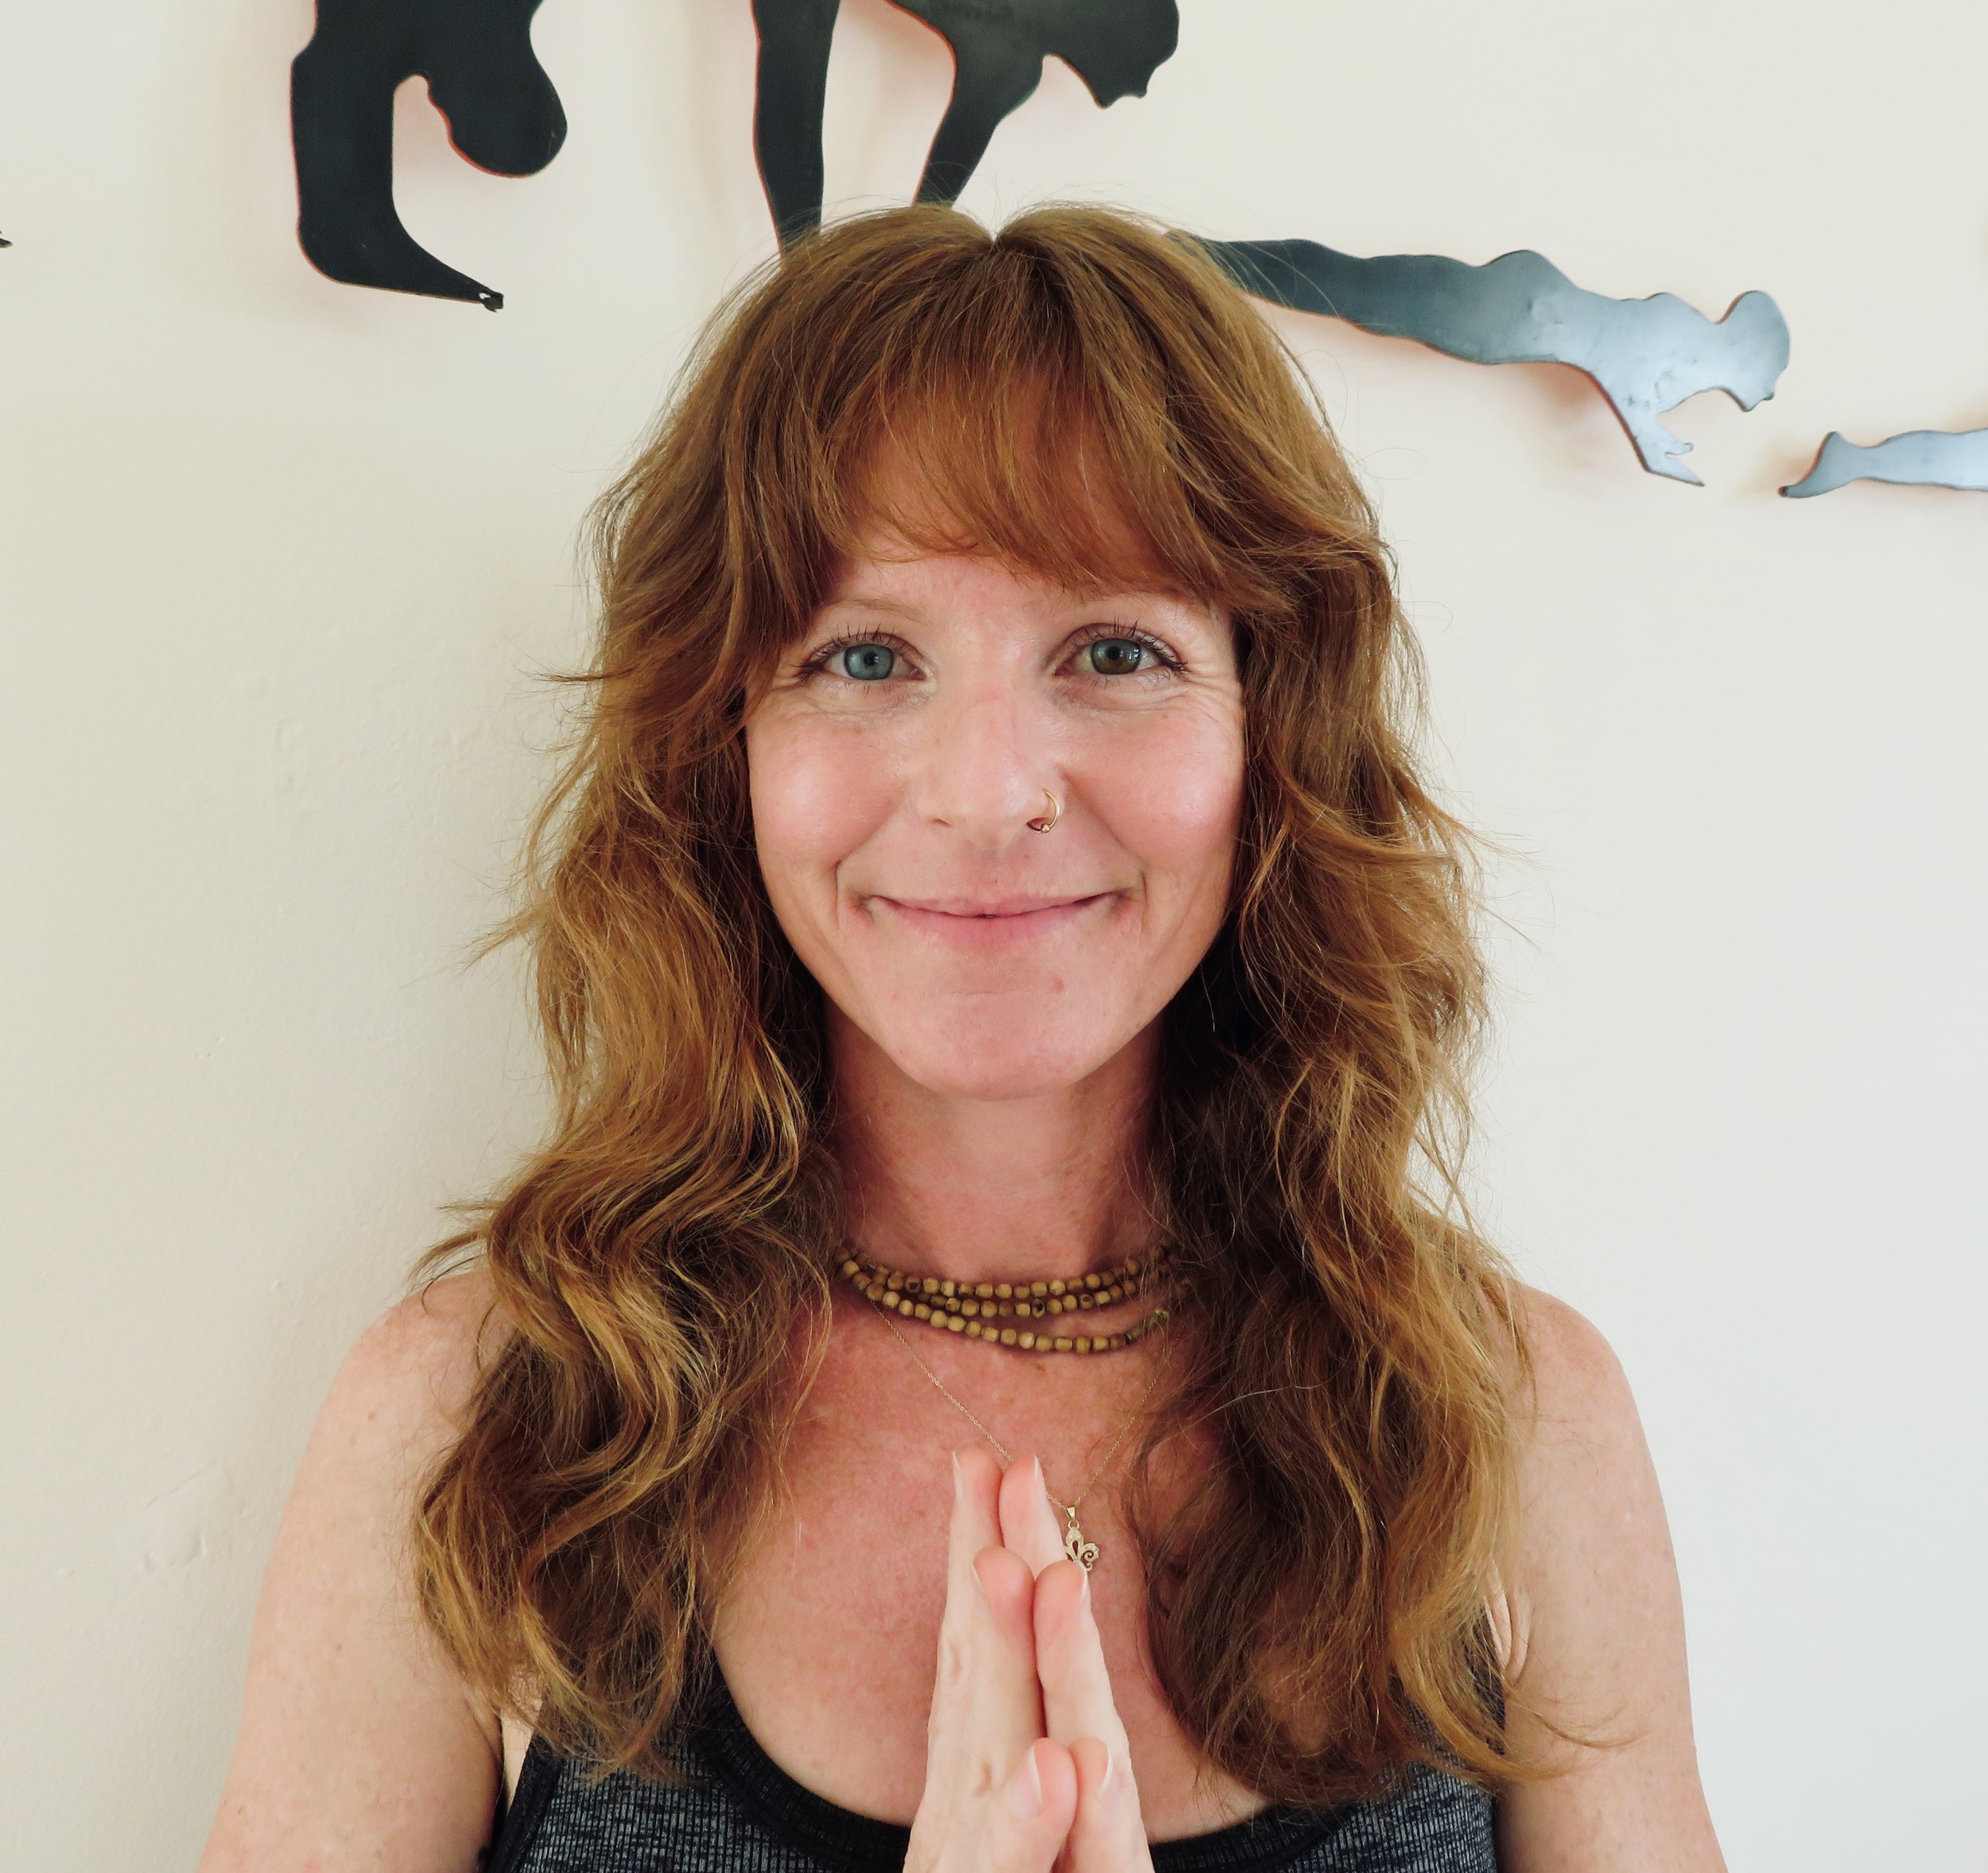 """Mary Kate  Mary Kate (RYT 200 Vinyasa & RYT 200 Kundalini) had the great fortune of beginning her yogic journey at age 22 when she met her spiritual teacher, Gurudass Kaur, while living in Barcelona.  She has been teaching yoga since 2007 throughout Northern California and internationally, predominately in West Africa. Drawn to """"the art of flow"""", MK completed her Vinyasa certification under the vast teachings of Iris Lambert. Grounded in breath and yogic tools, MK's classes offer a powerful rhythmic flow, helping students experience the Self and spirit. MK loves travel, music, nature and service. She is grateful to live in Sonoma County with her husband and daughter. For more information:  www.namastaymk.com"""